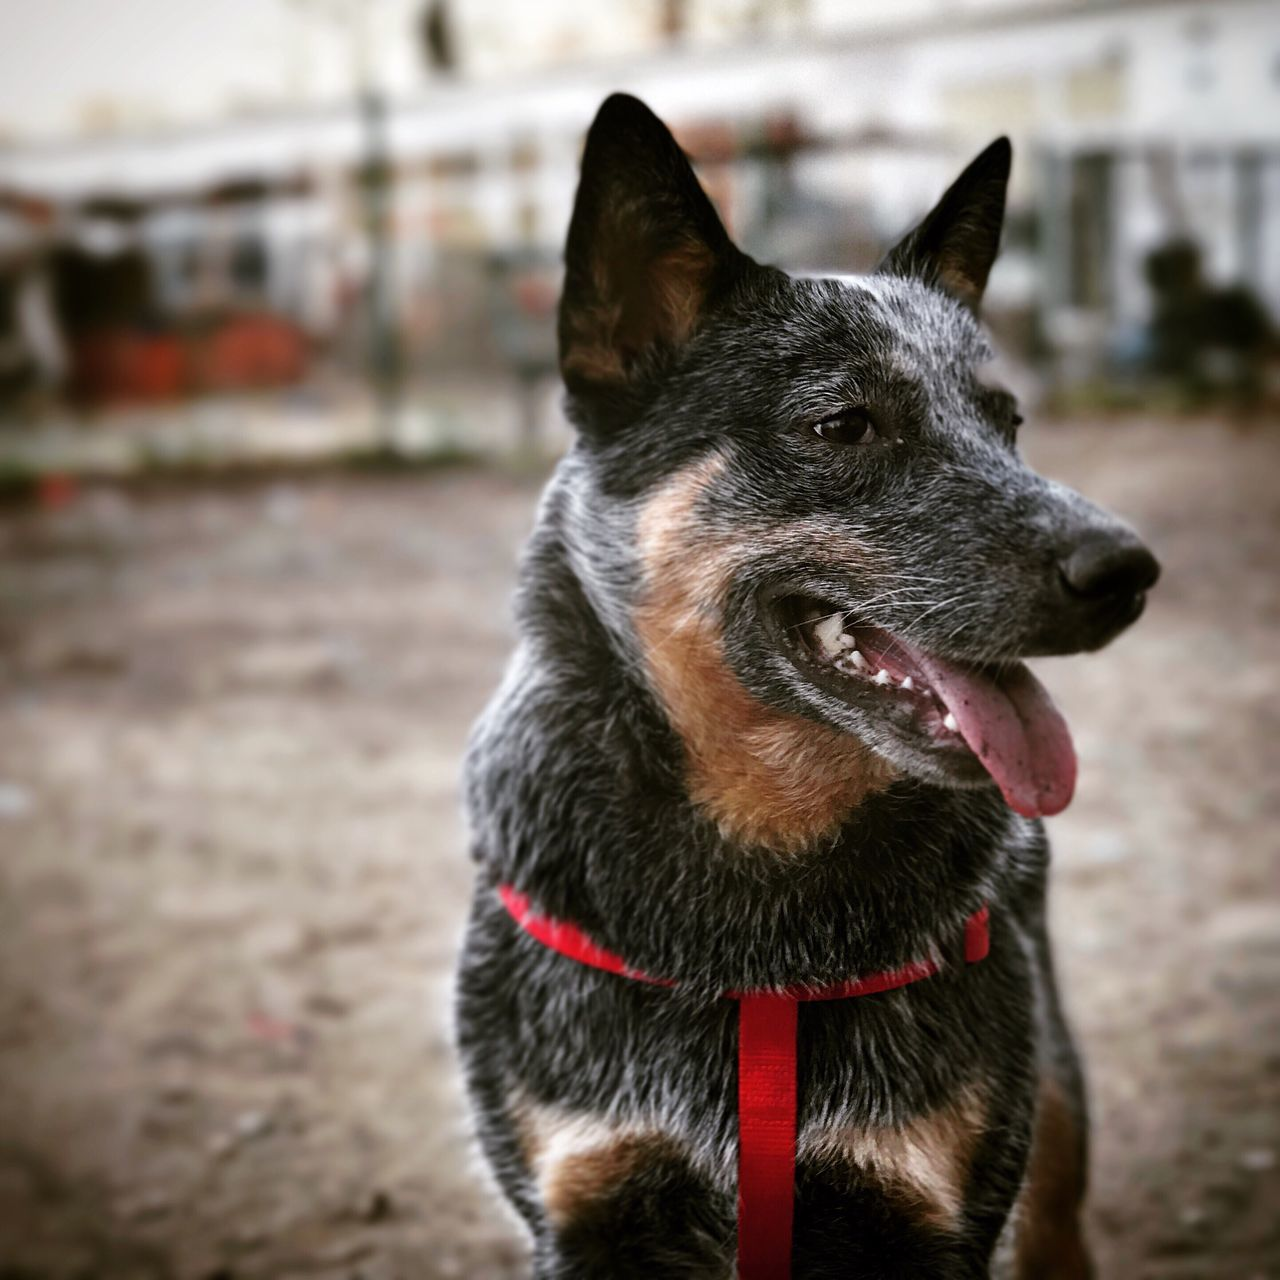 Standing still for a second Domestic Animals One Animal Pets Animal Themes Dog Mammal Focus On Foreground No People Close-up Day Outdoors Blue Dog ACD  Blue Heeler Australian Cattle Dog Cattledog